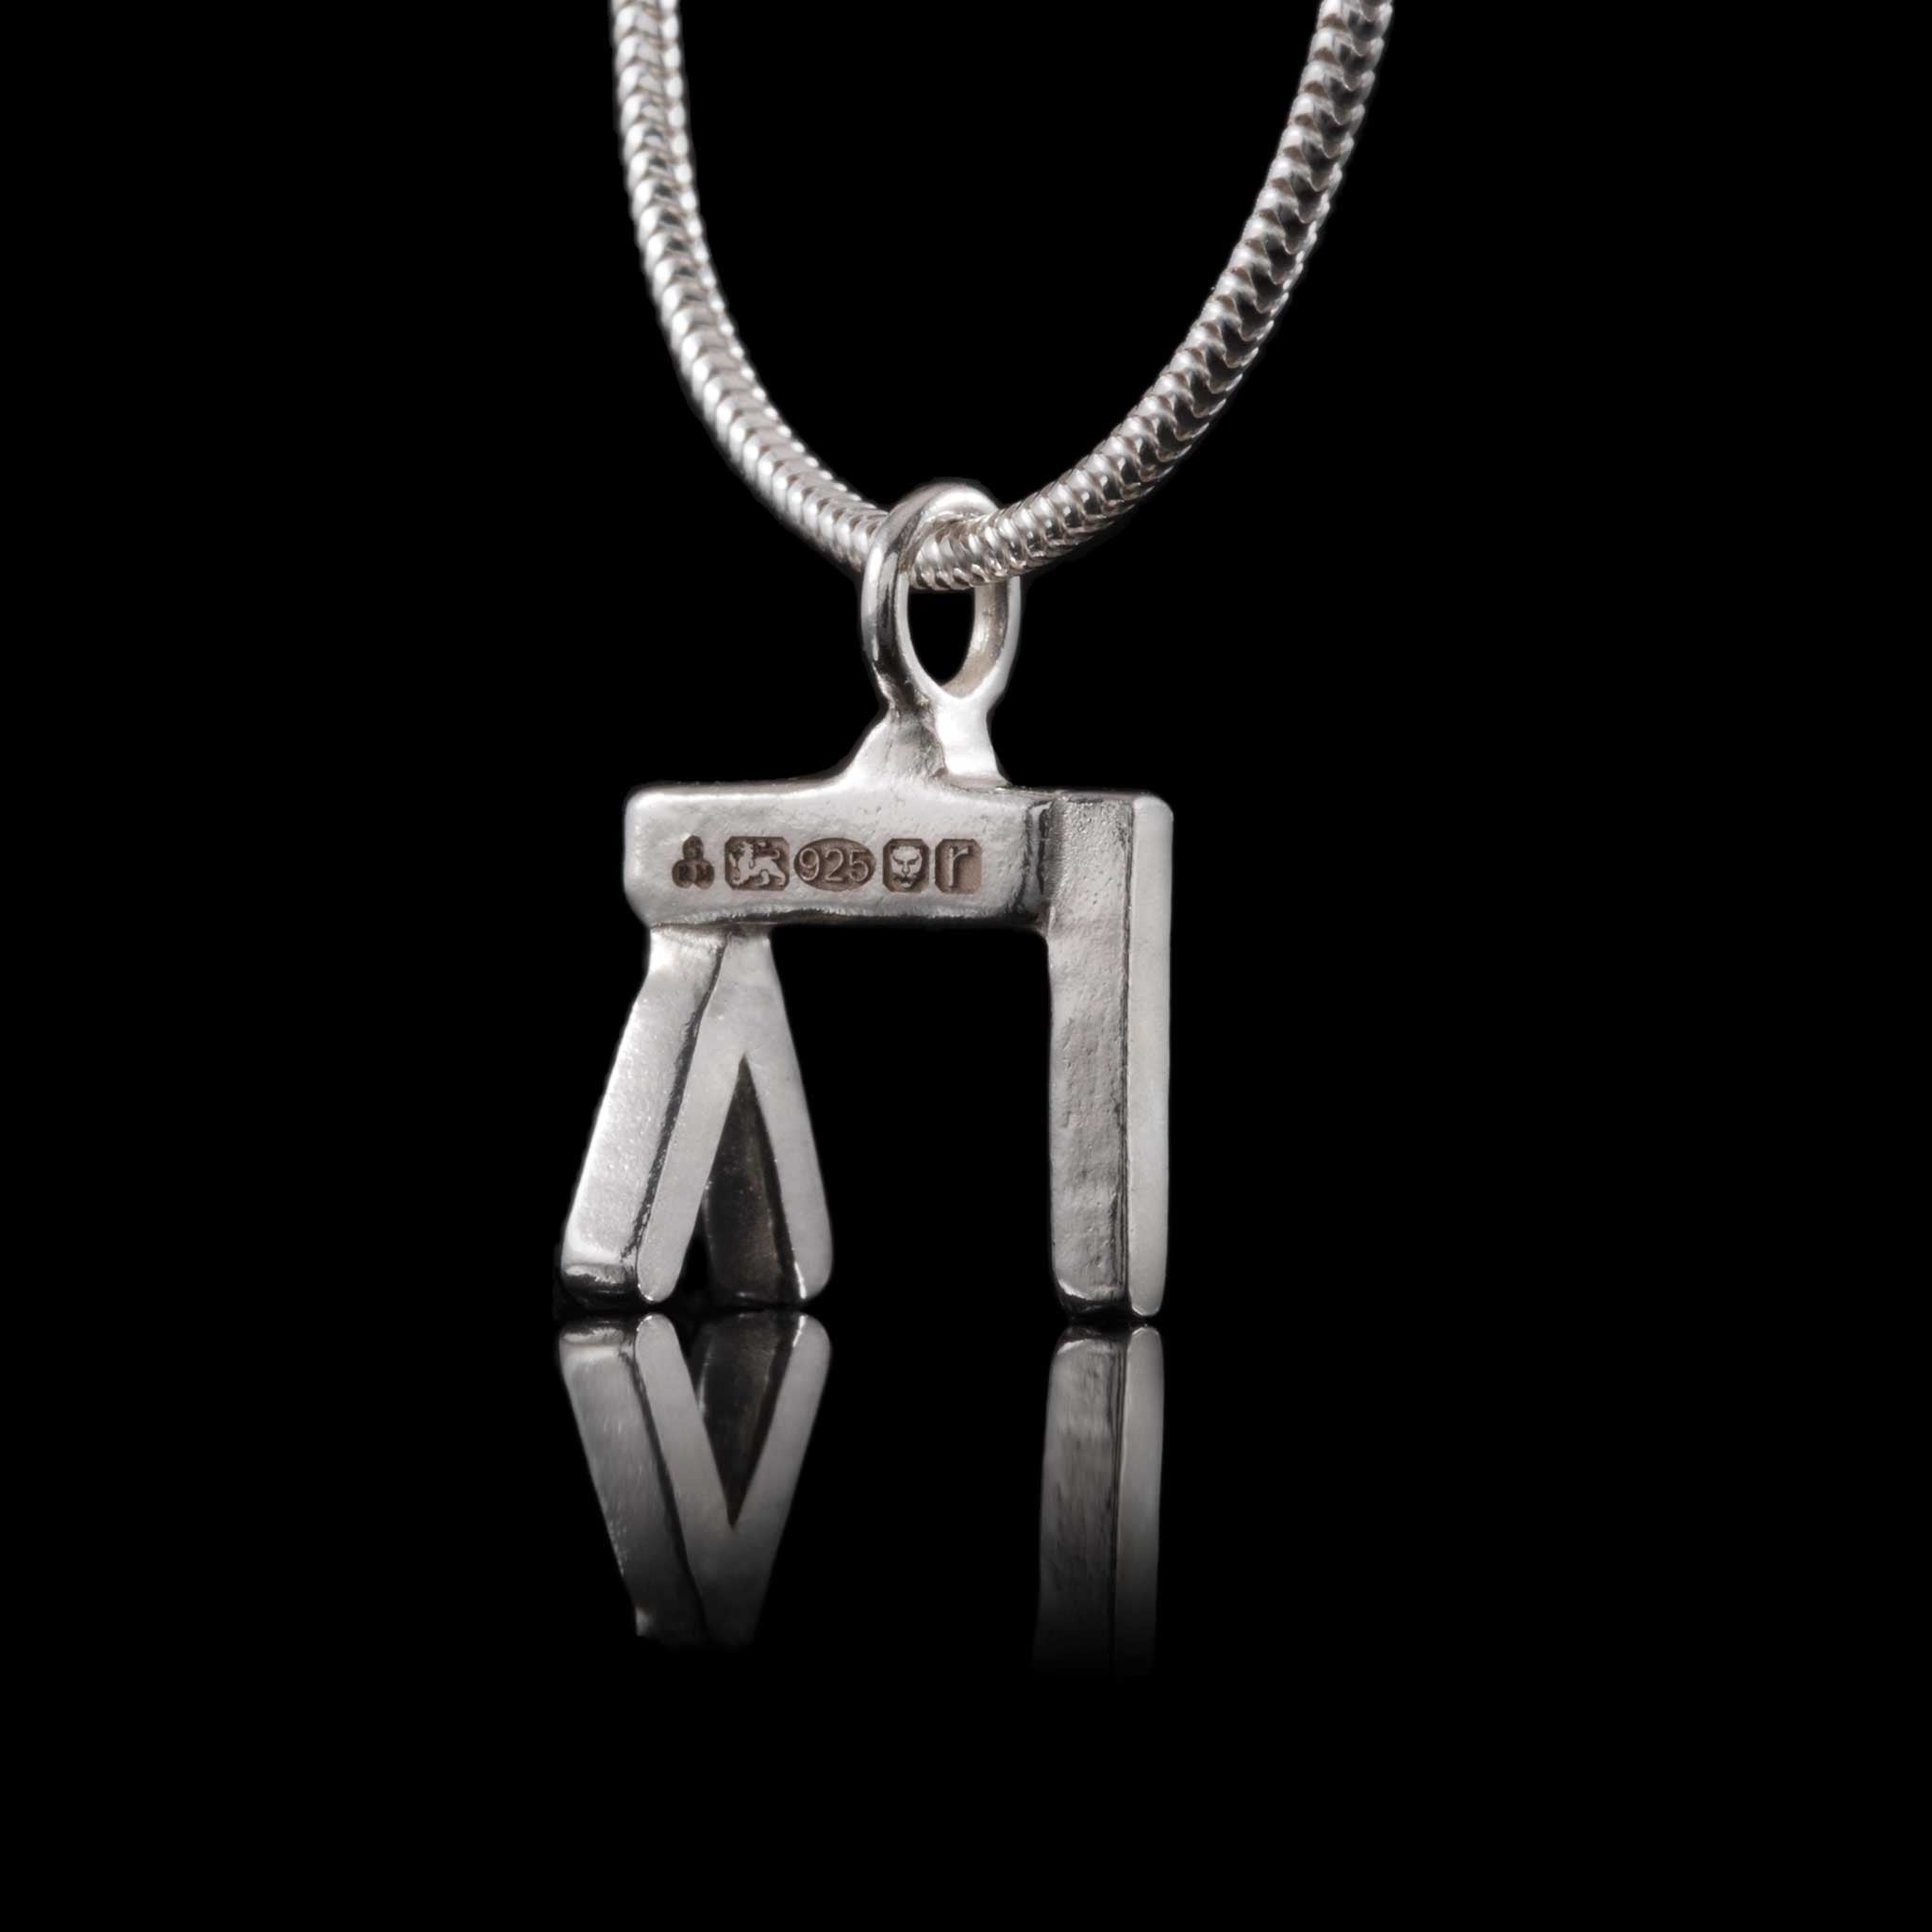 Handcrafted UK Made Sterling Silver Pendant. Belfast jewellery gift idea.  Engrave with your own personalized word up to 8 letters.  Hallmarked.